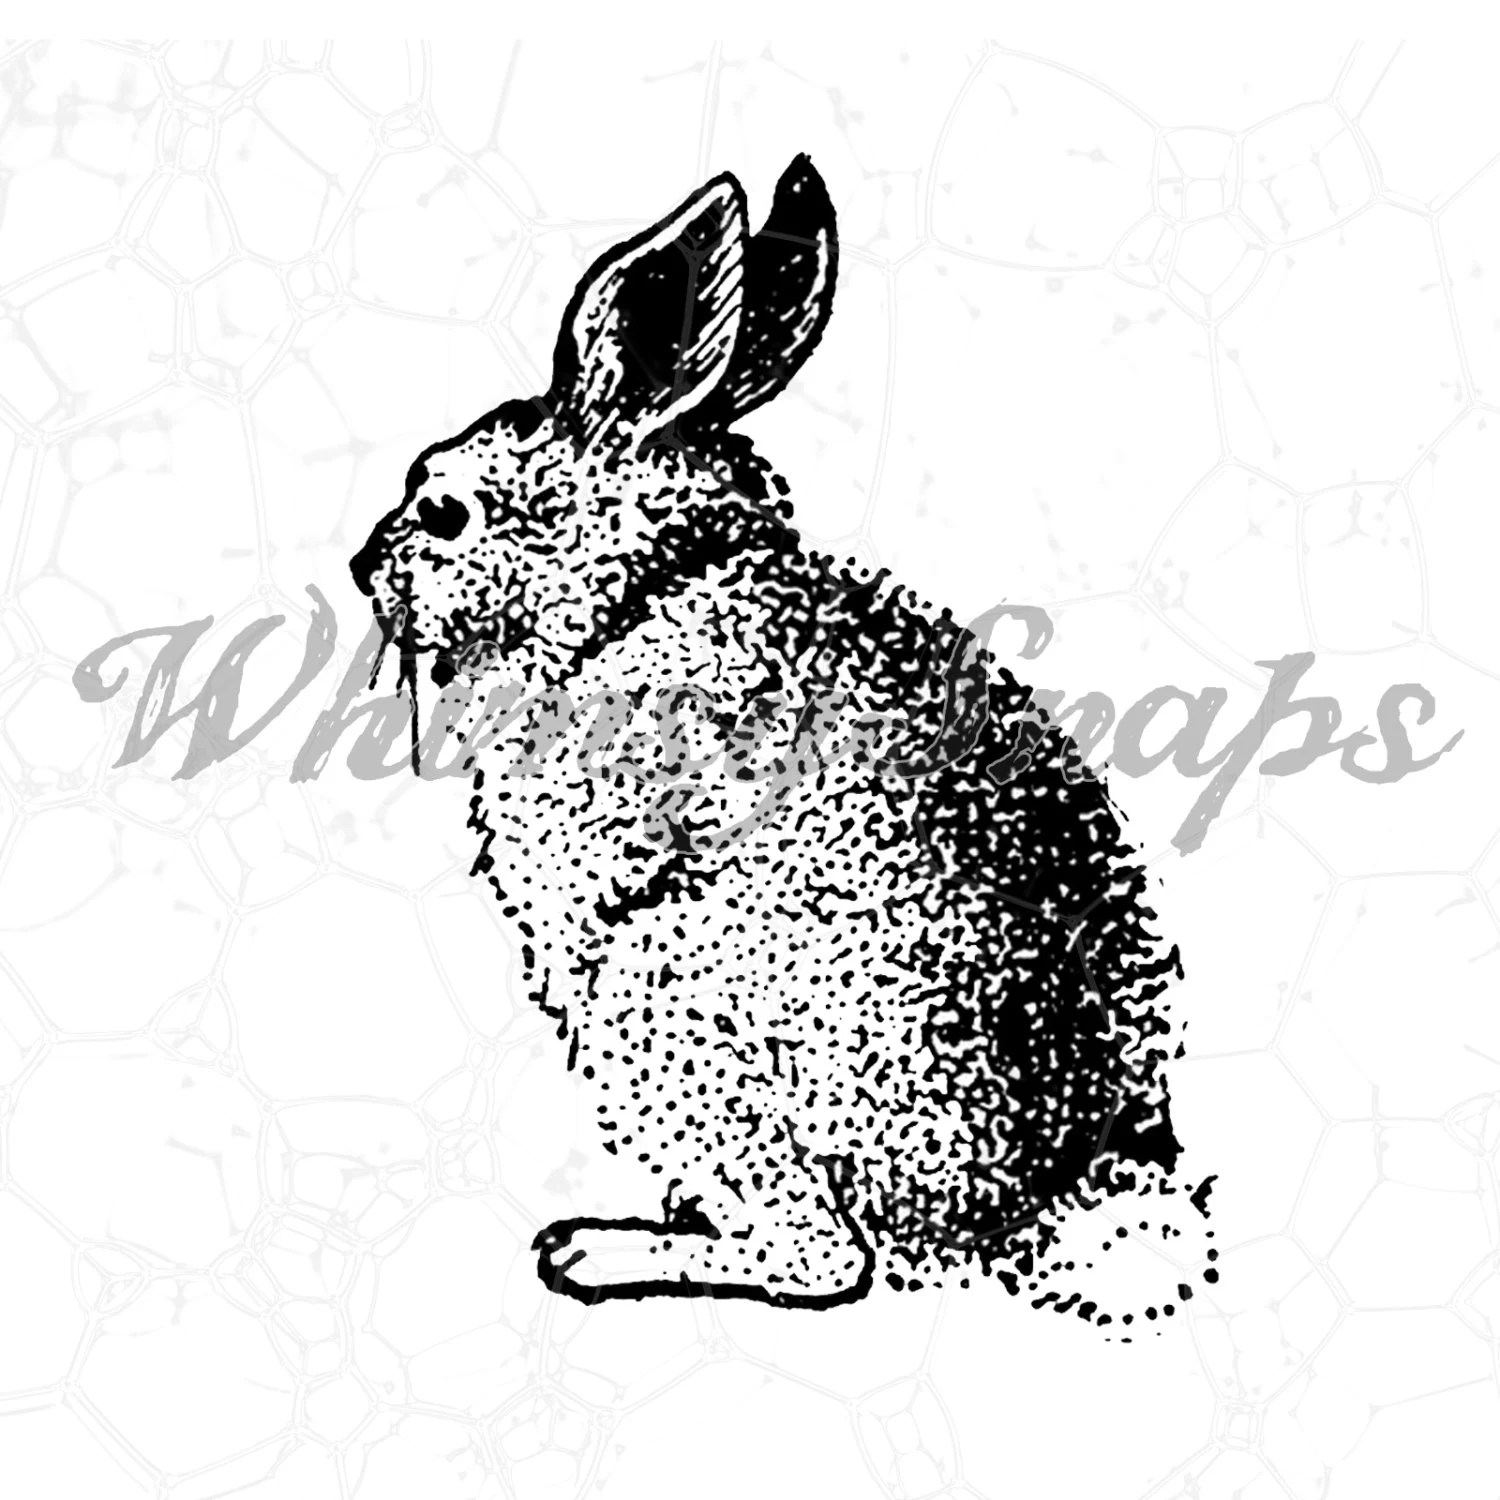 Vintage Bunny Rabbit Clip Art Digital Image By Whimsysnaps